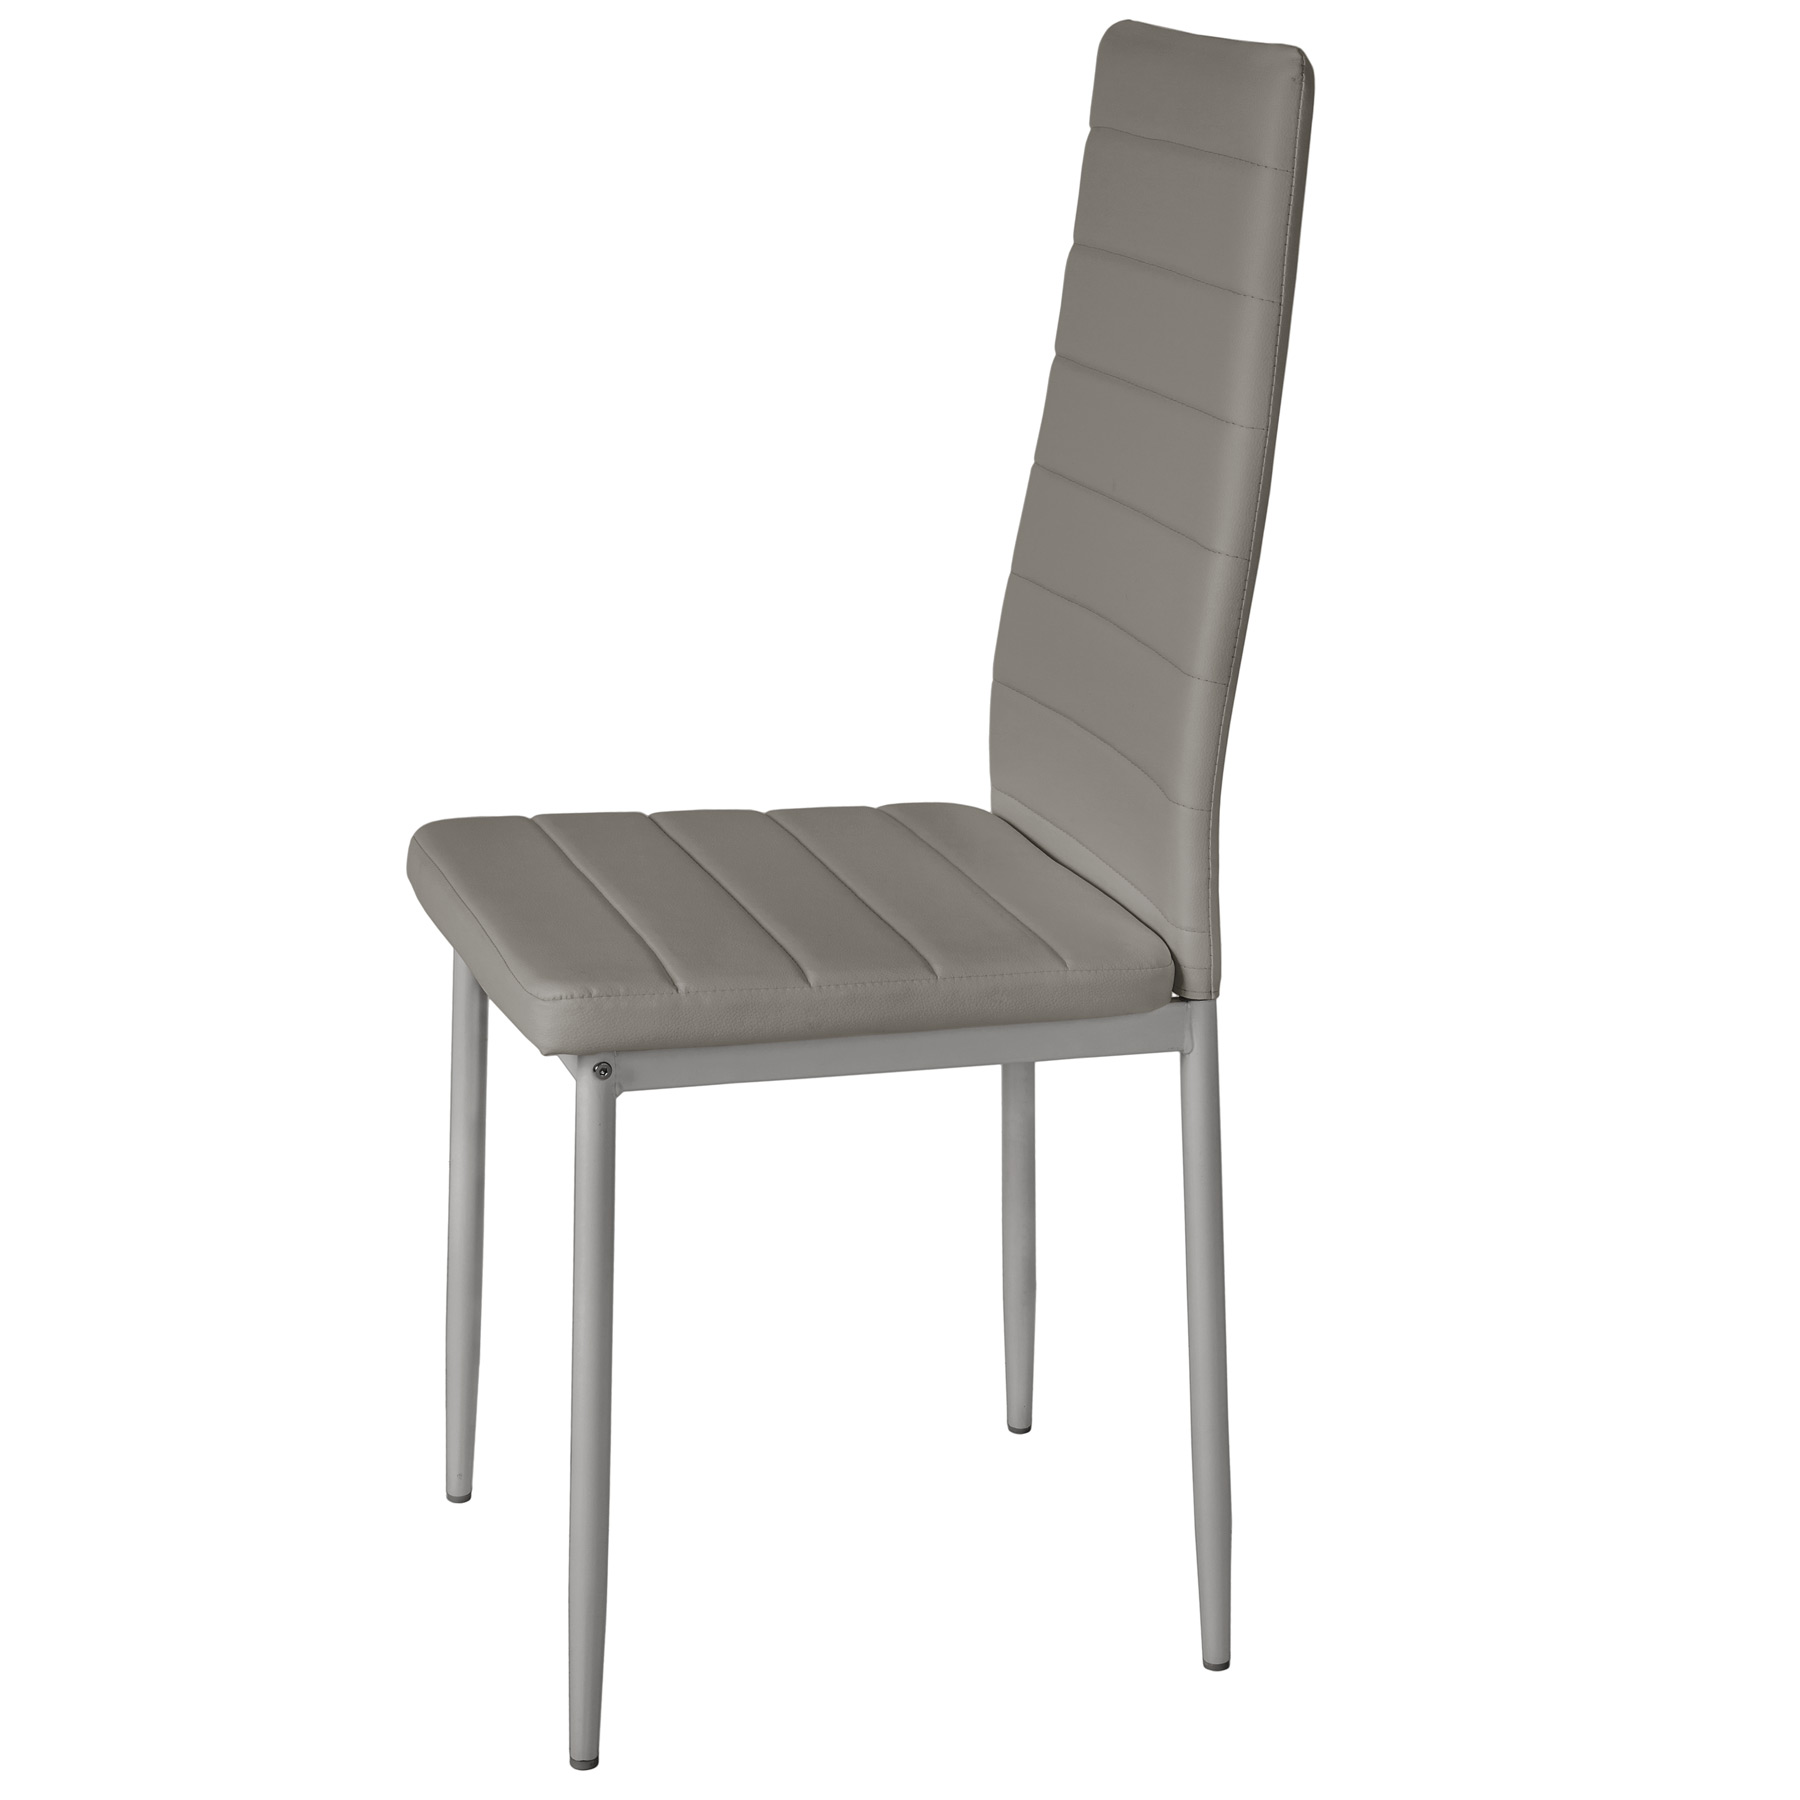 4 modern dining chairs dining room chair table faux leather furniture cozy grey ebay. Black Bedroom Furniture Sets. Home Design Ideas